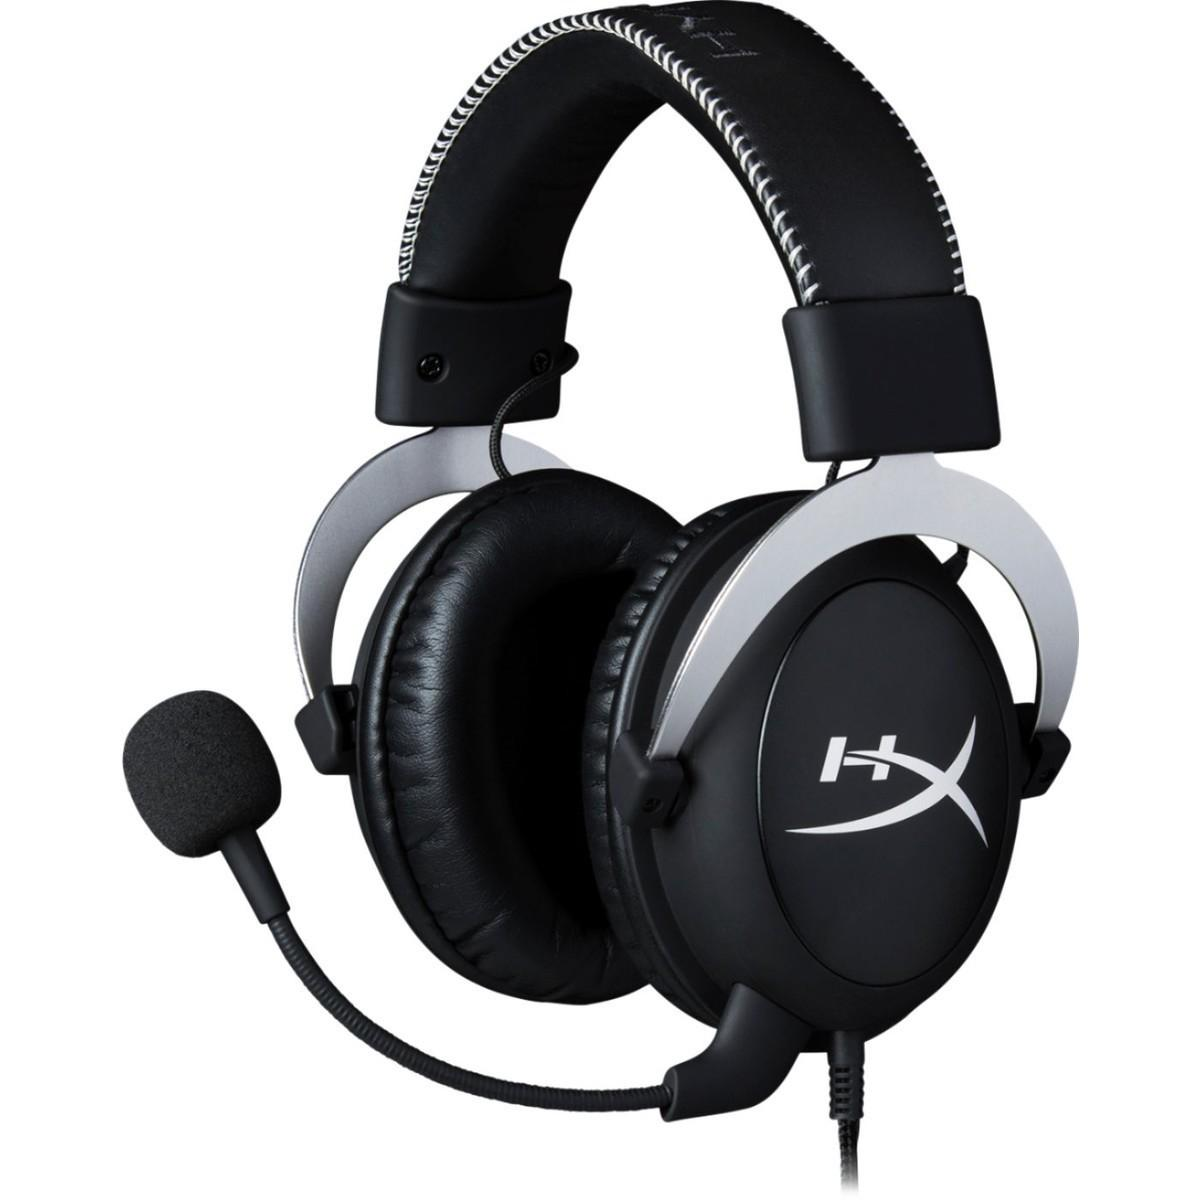 HyperX Cloudx Gaming Headset – Silver